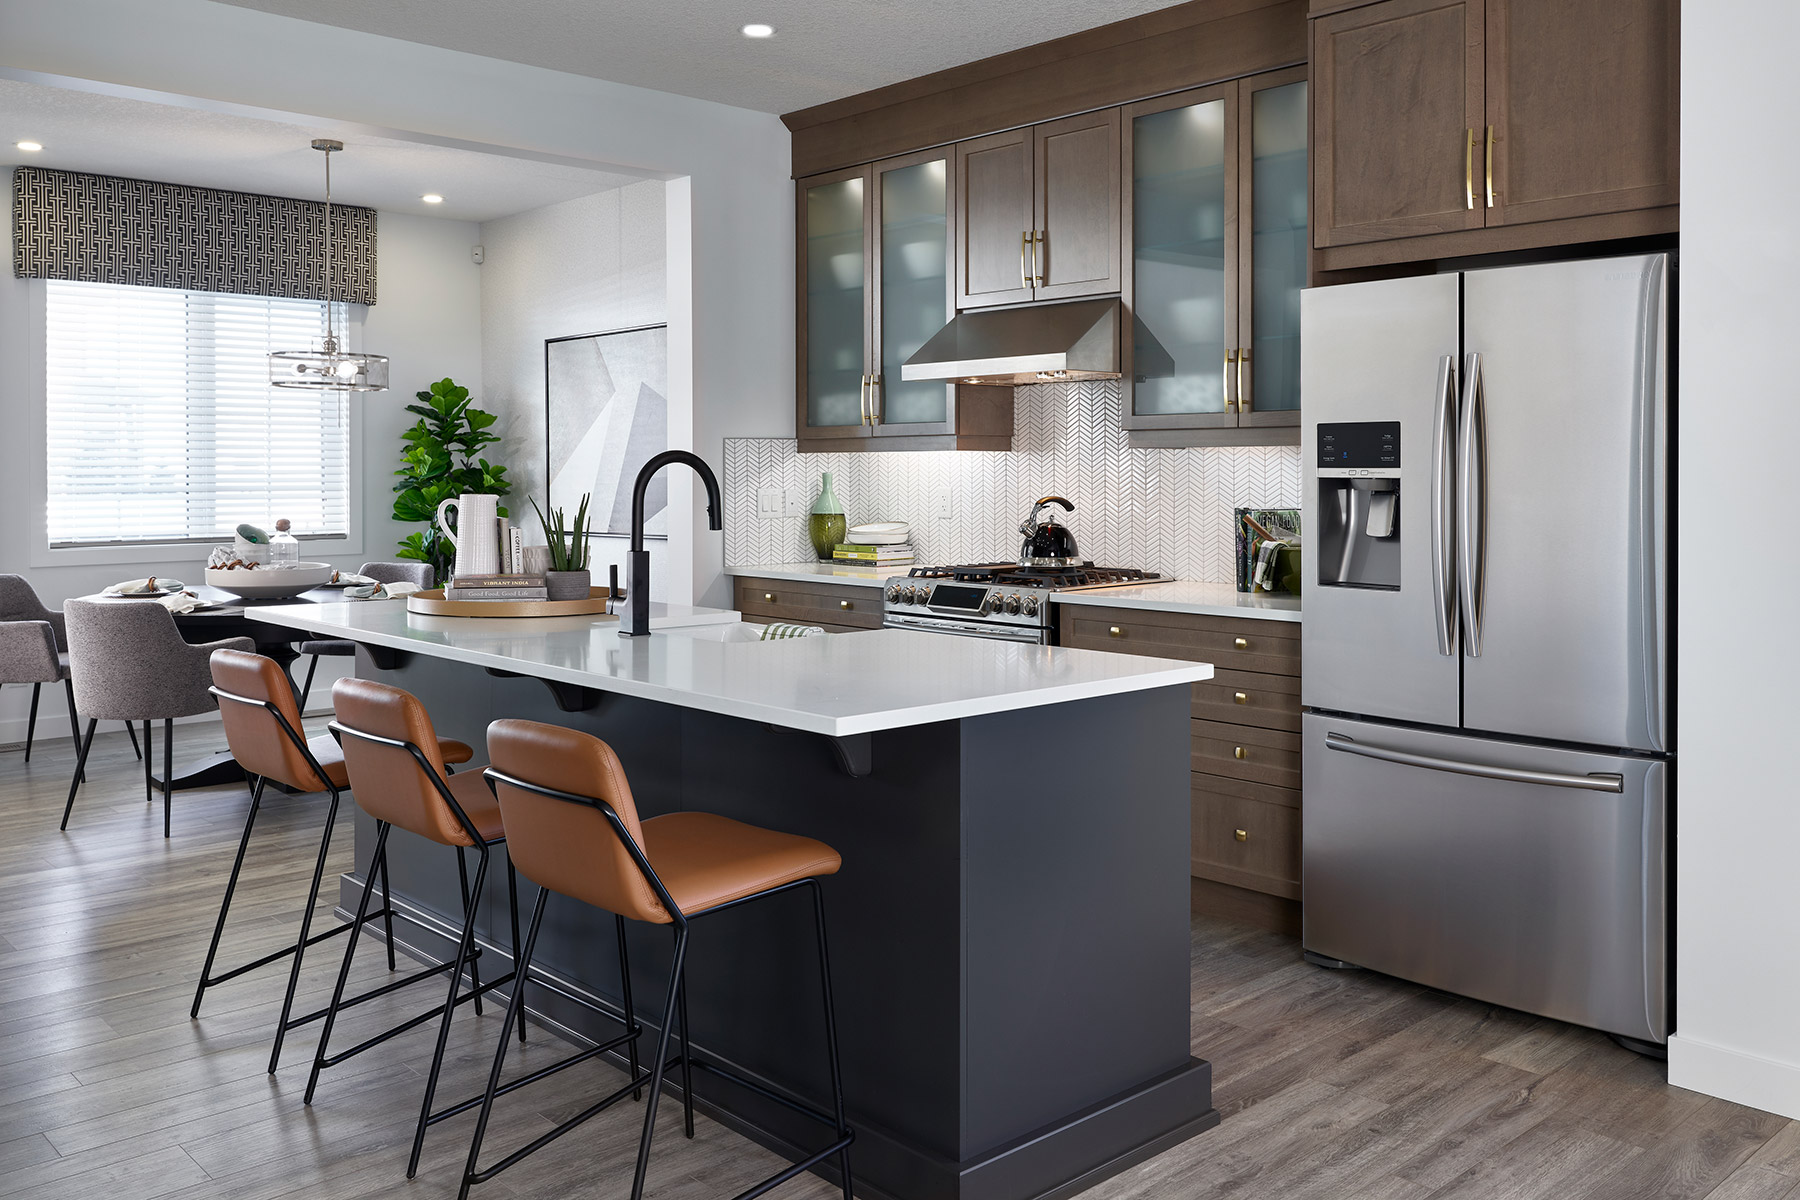 Palliser Plan Kitchen at Carrington in Calgary Alberta by Mattamy Homes